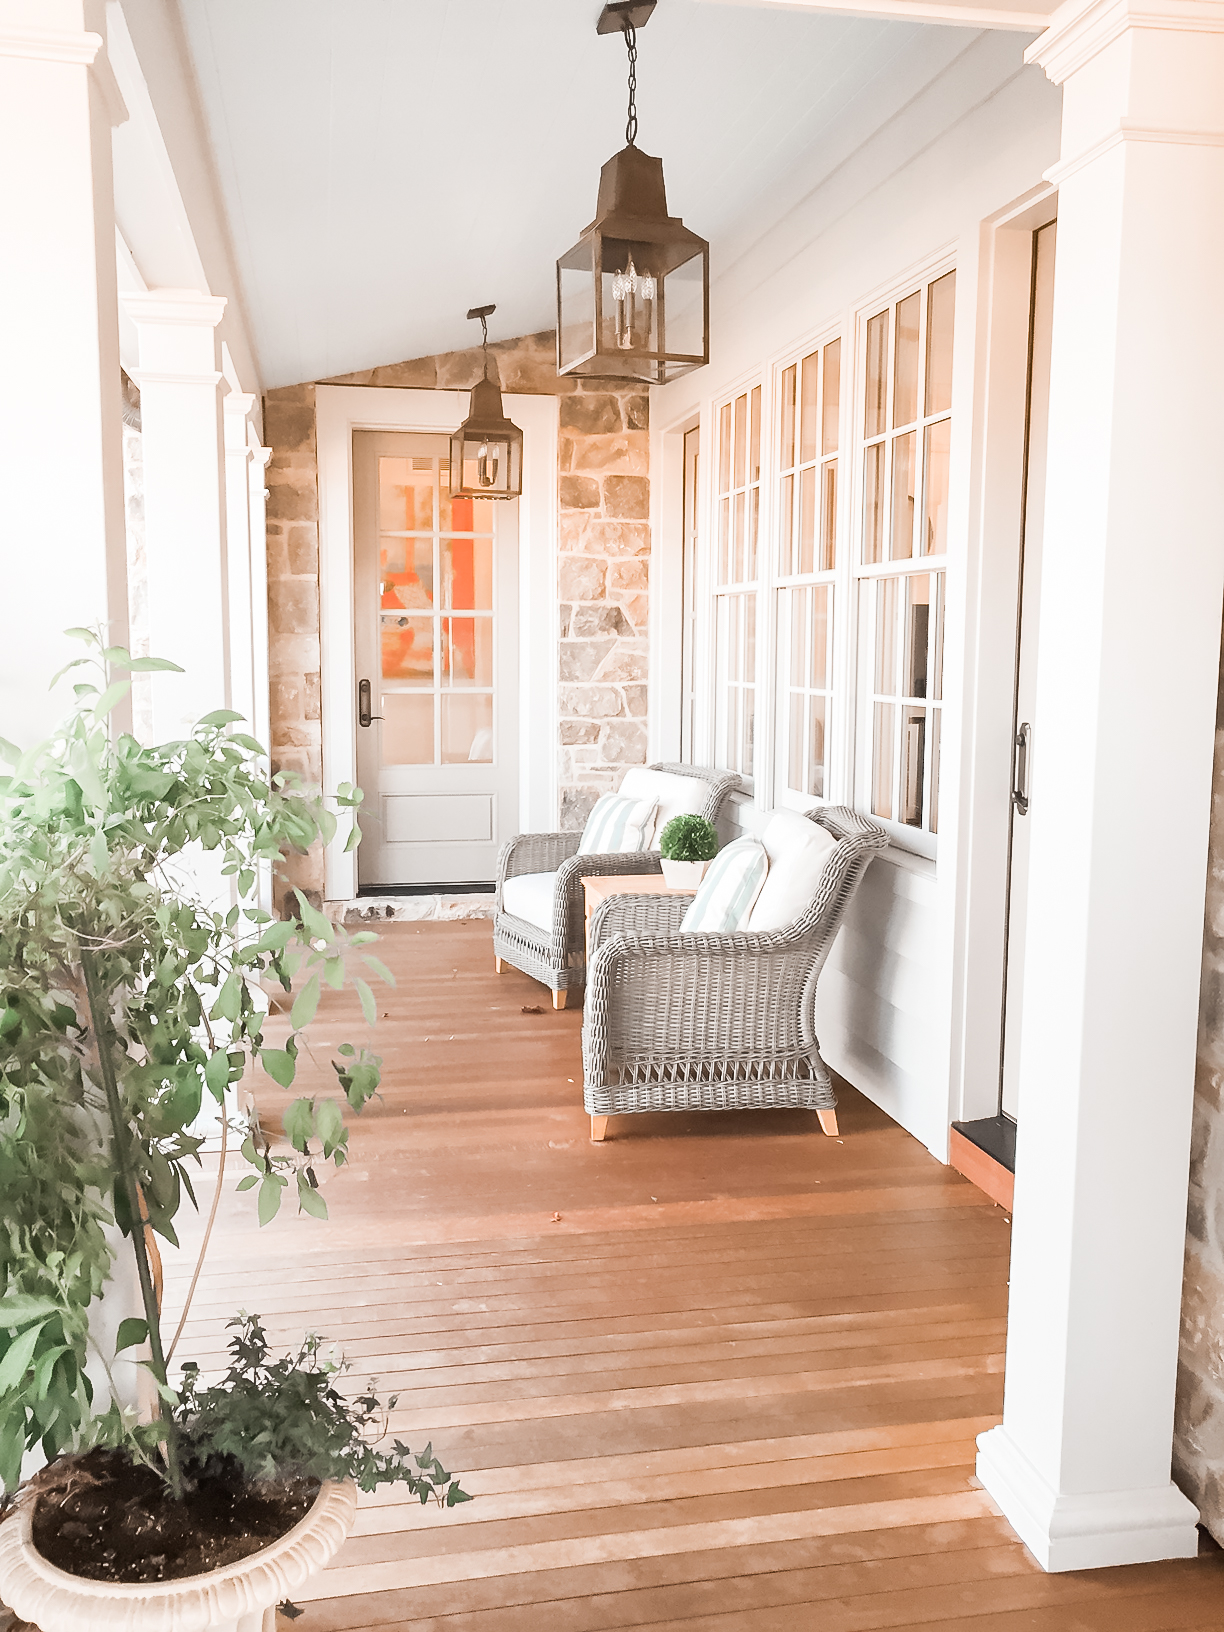 Southern Living Magazine Idea Home - Andrea Rodway Photography-2.jpg